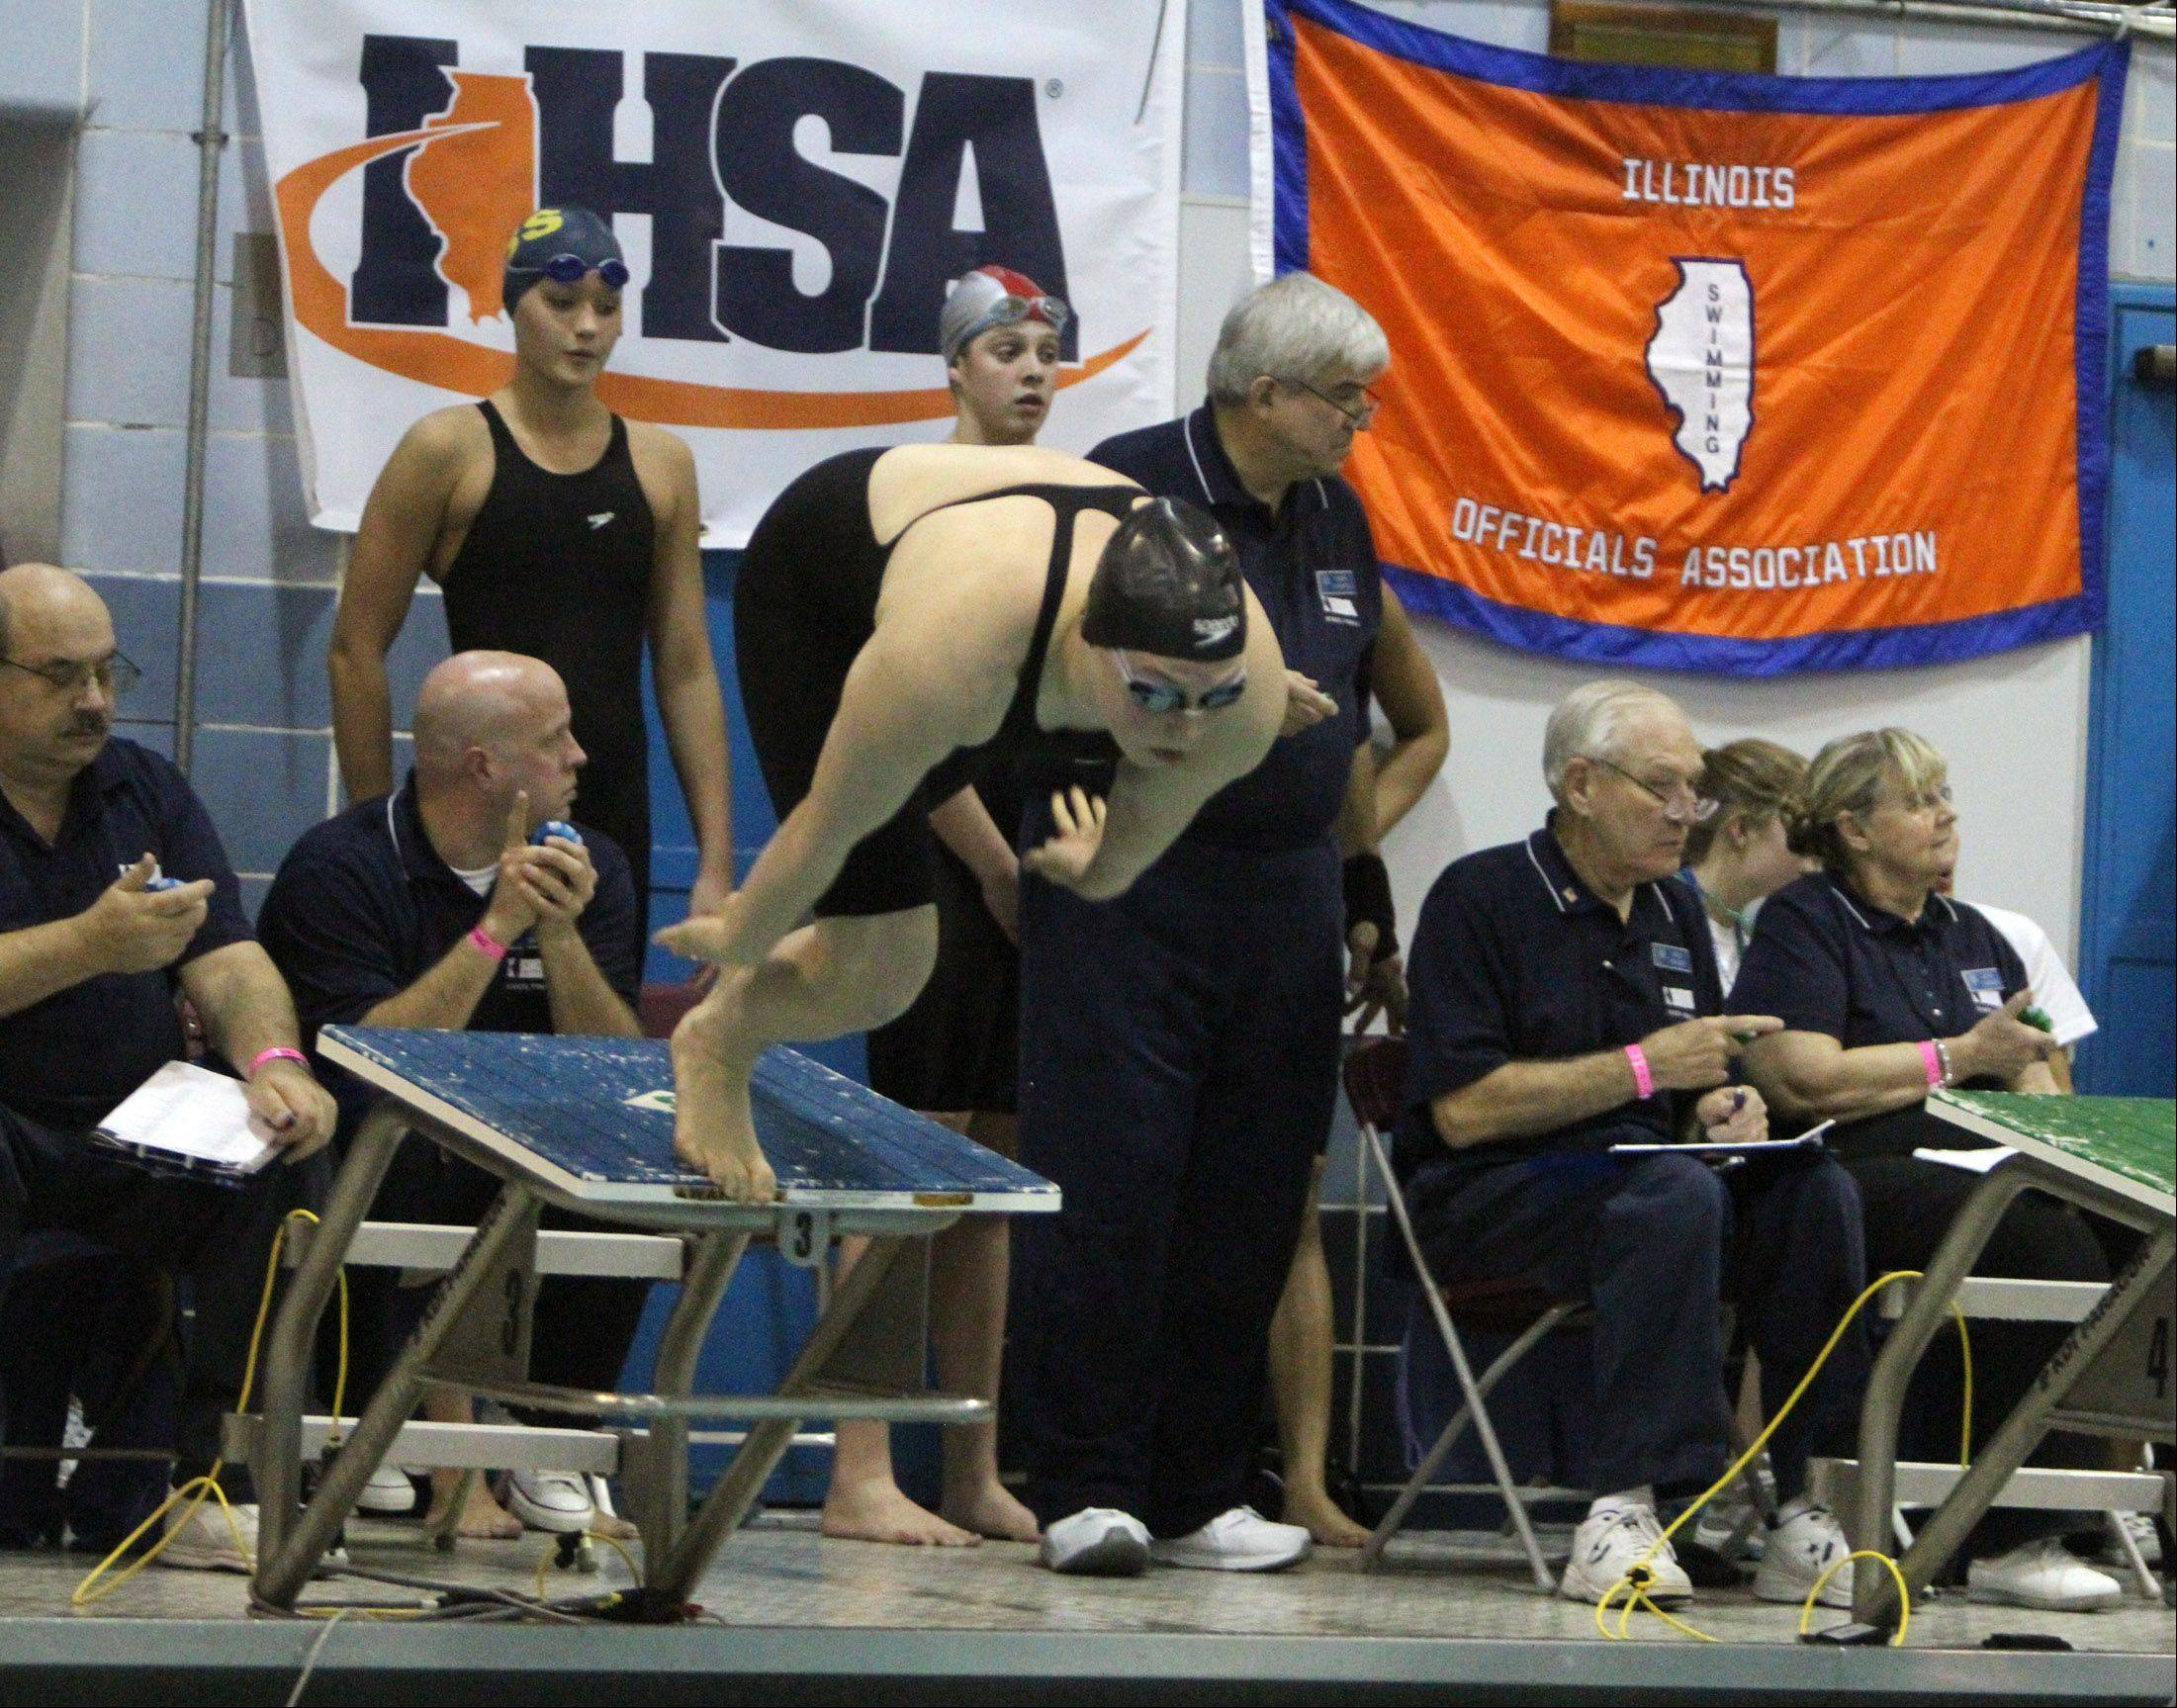 Barrington's Erika Elliott at the start of the 50-yard freestyle at IHSA state final preliminaries in Winnetka on Friday, November 18th.